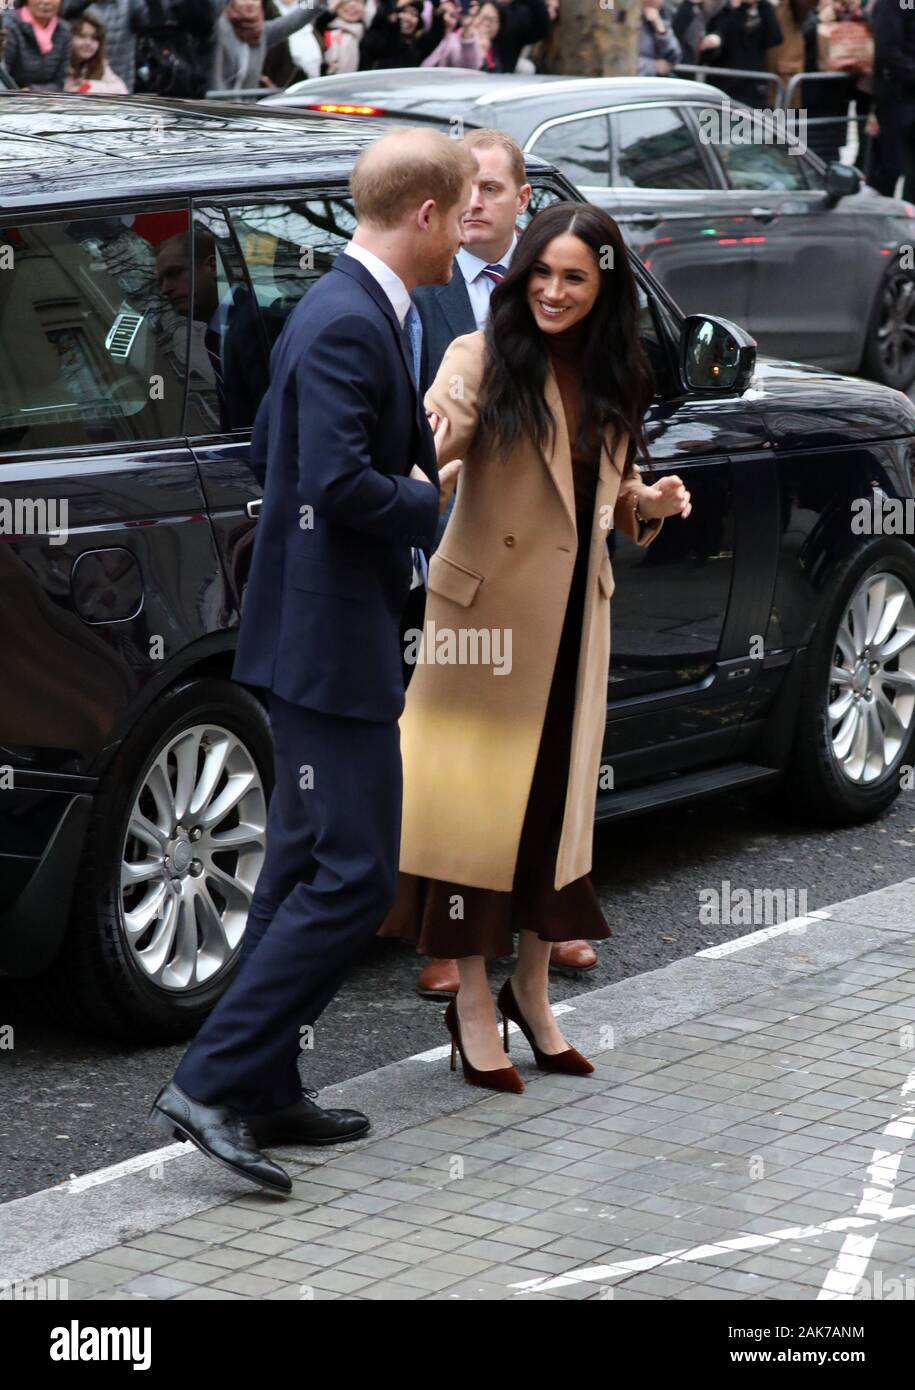 London, UK. 7th Jan 2020. Prince Harry (Duke of Sussex) and Meghan Markle (Duchess of Sussex) visit Canada House, London, UK, on January 7, 2020. Credit: Paul Marriott/Alamy Live News Stock Photo